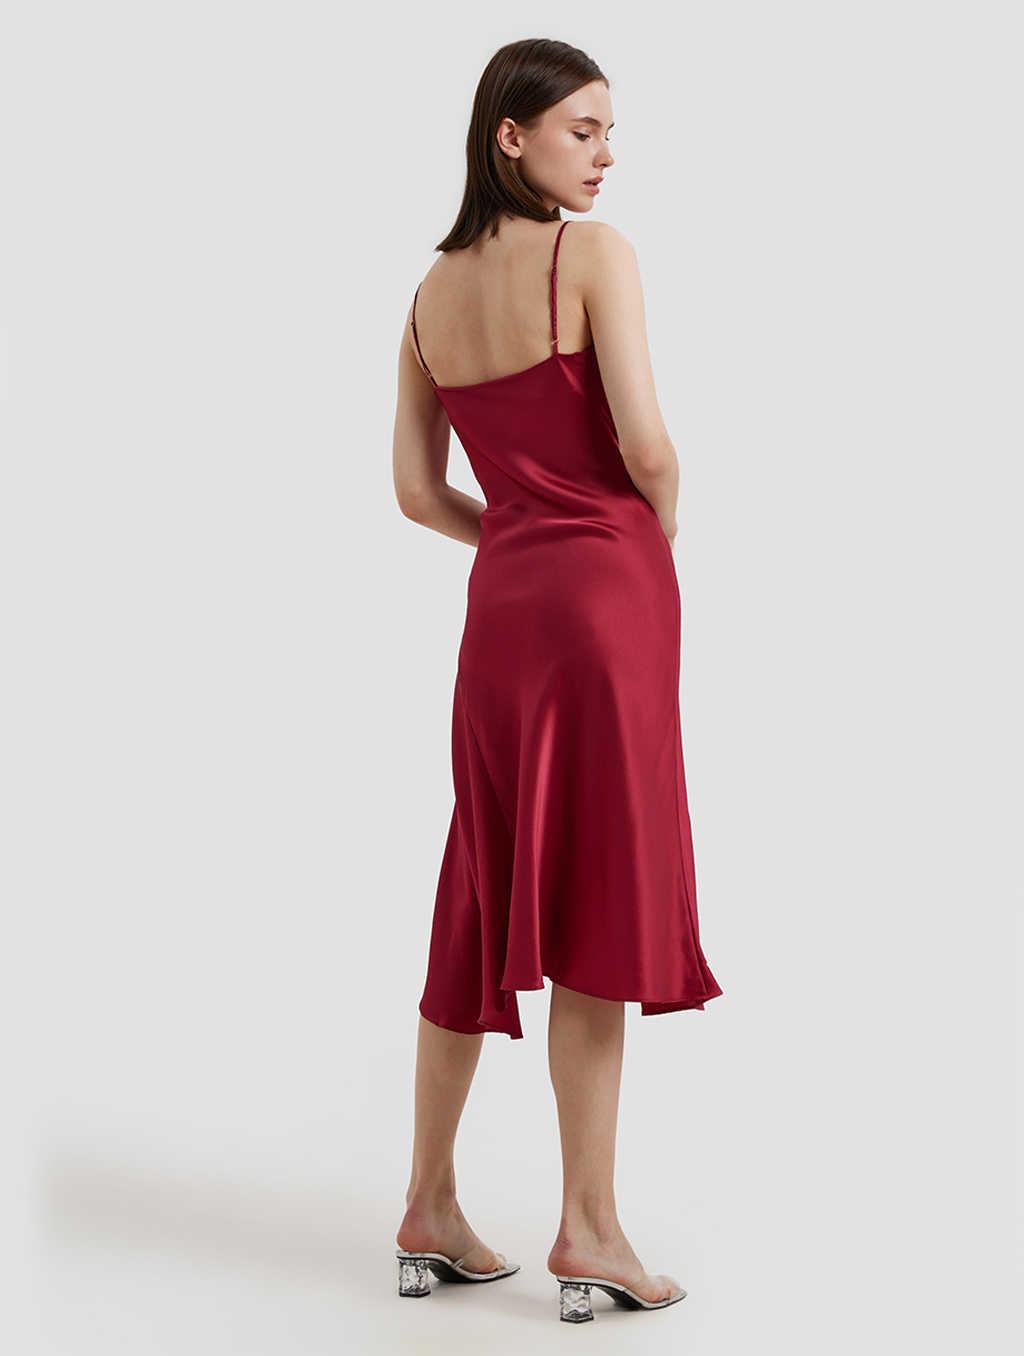 Cowl Neck Srips Dress-back-red